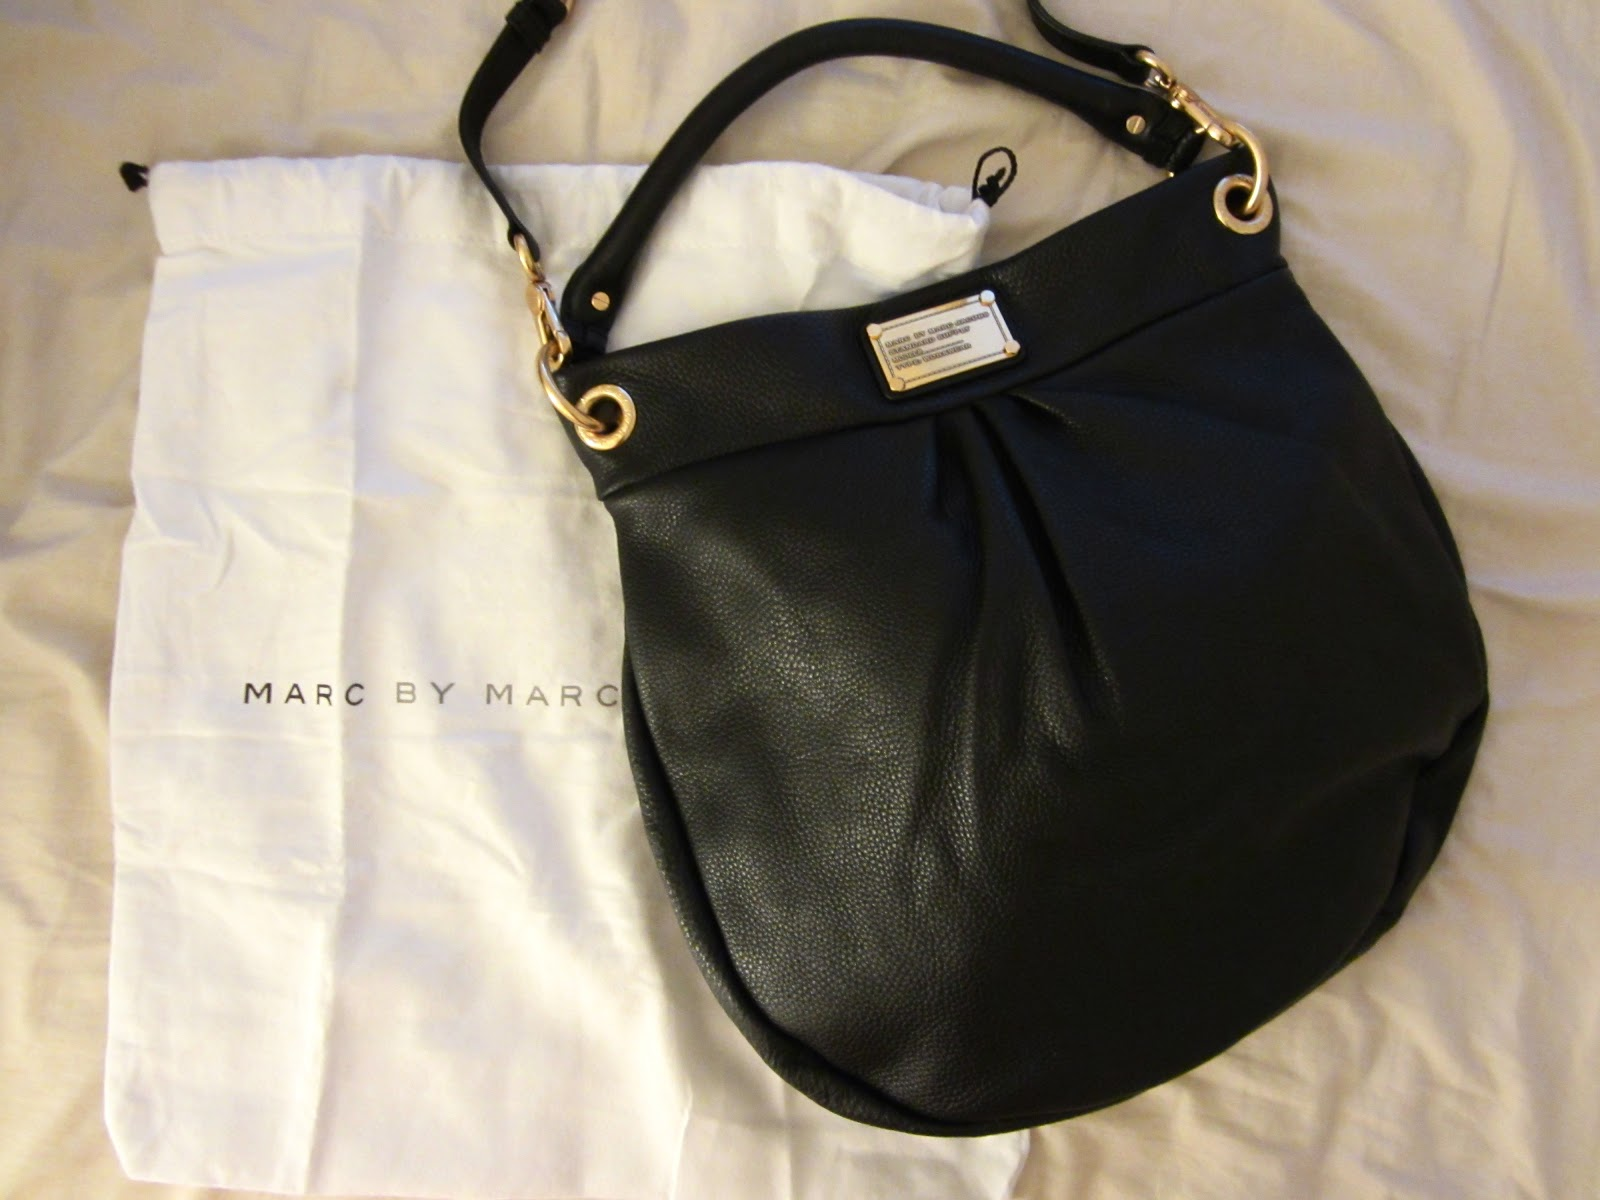 Marc by Marc Jacobs Classic Q Hillier Hobo - Black with Gold Hardware 3f2731321bb9